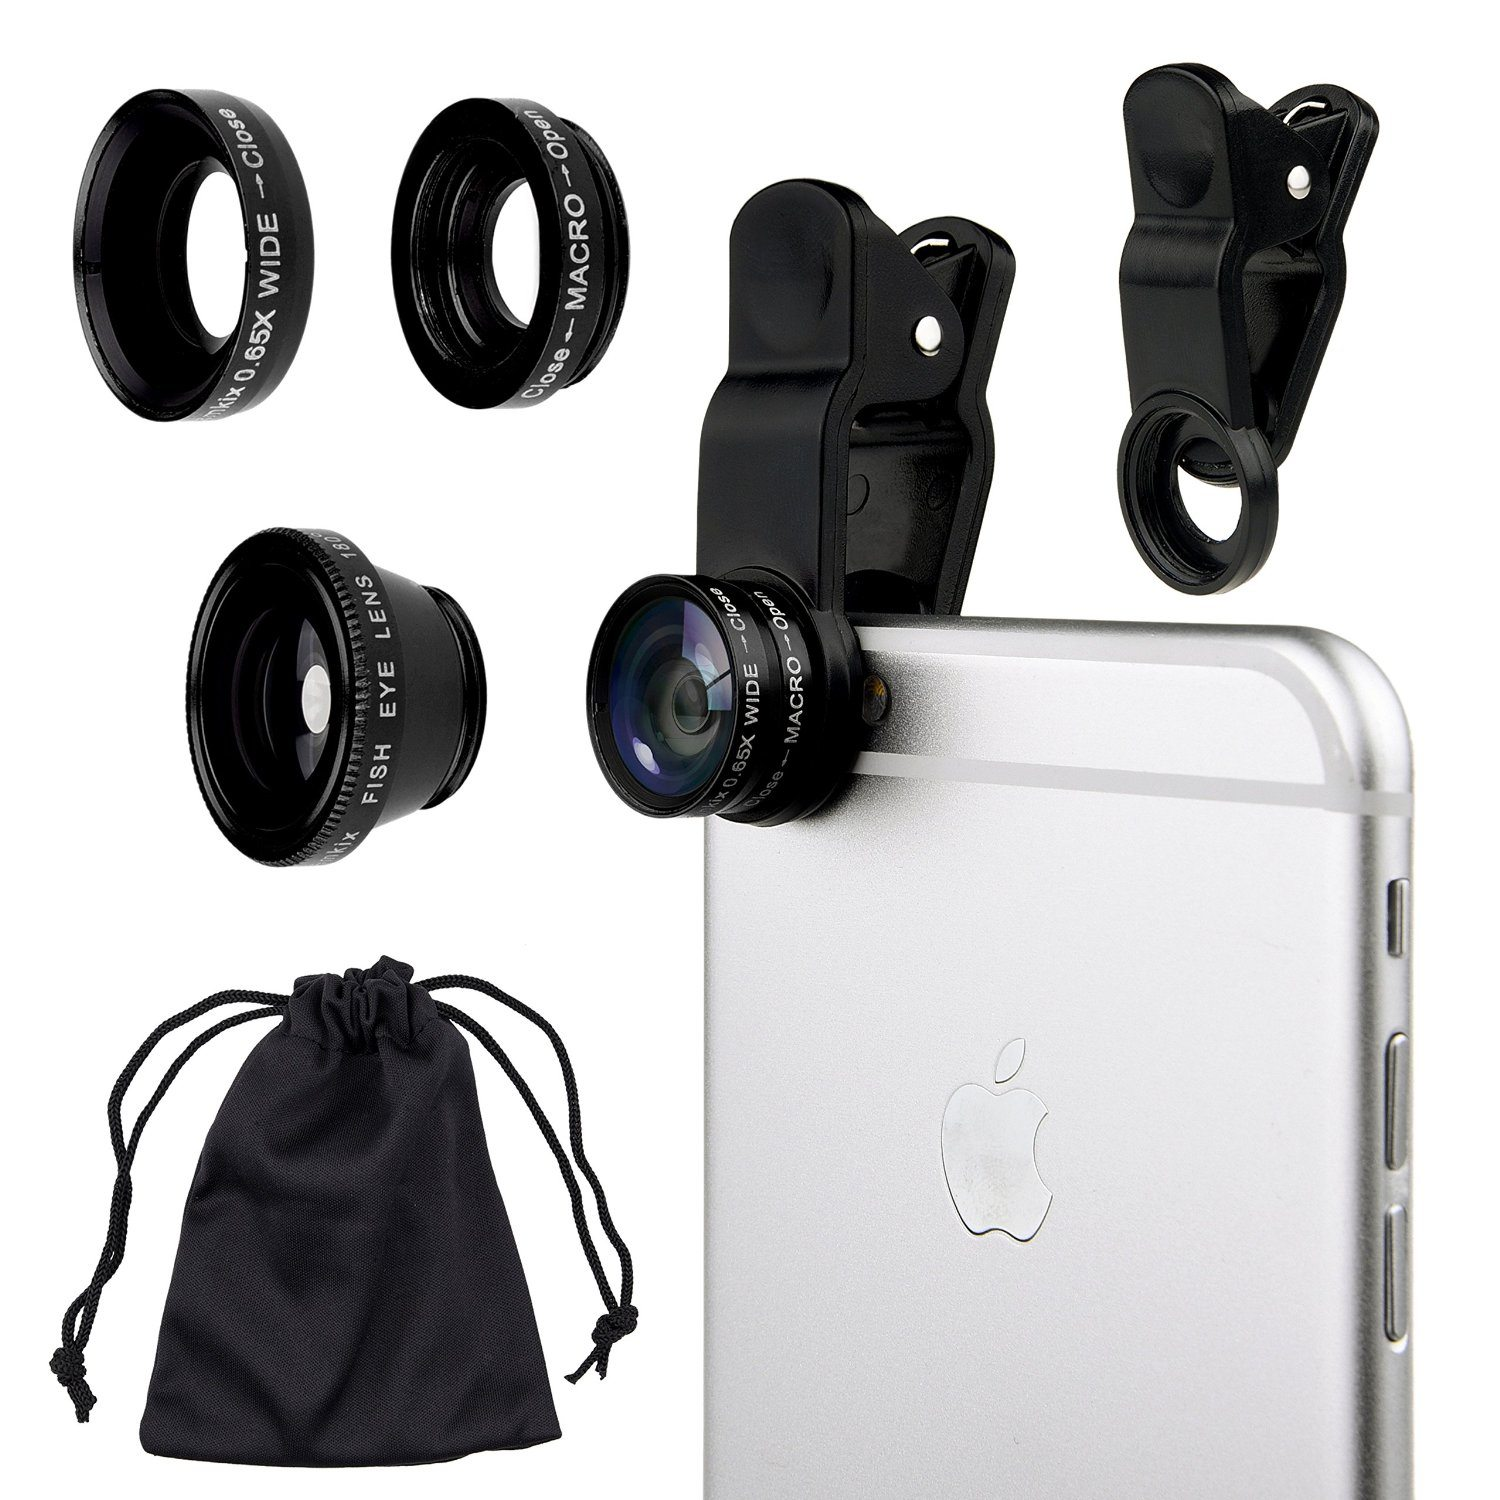 Product photography with phone camera - Clip on lenses